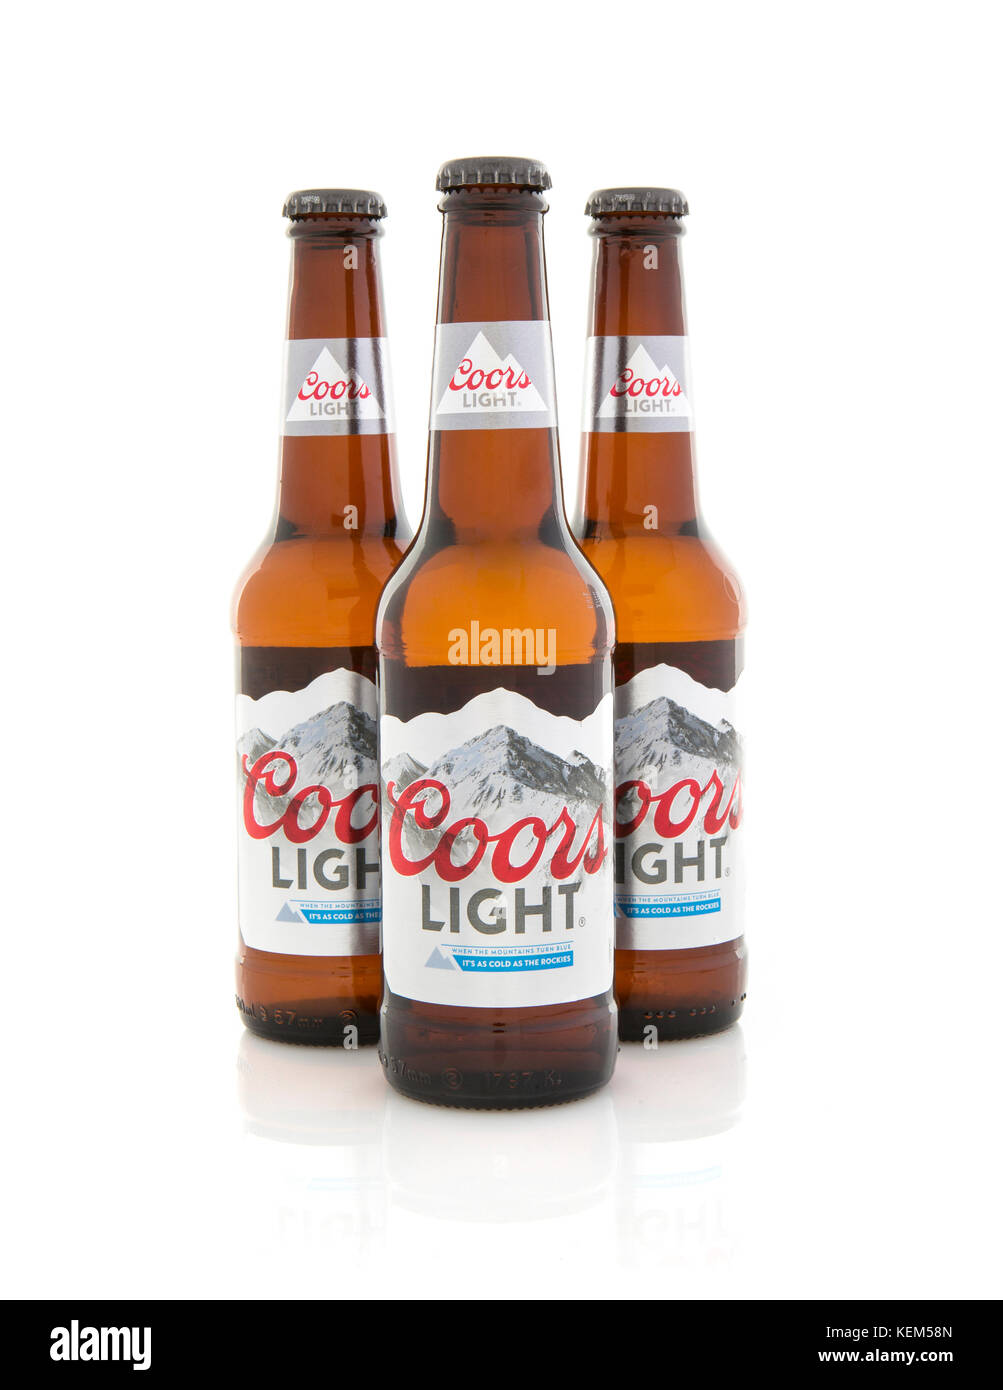 Coors Beer Stock Photos & Coors Beer Stock Images - Alamy